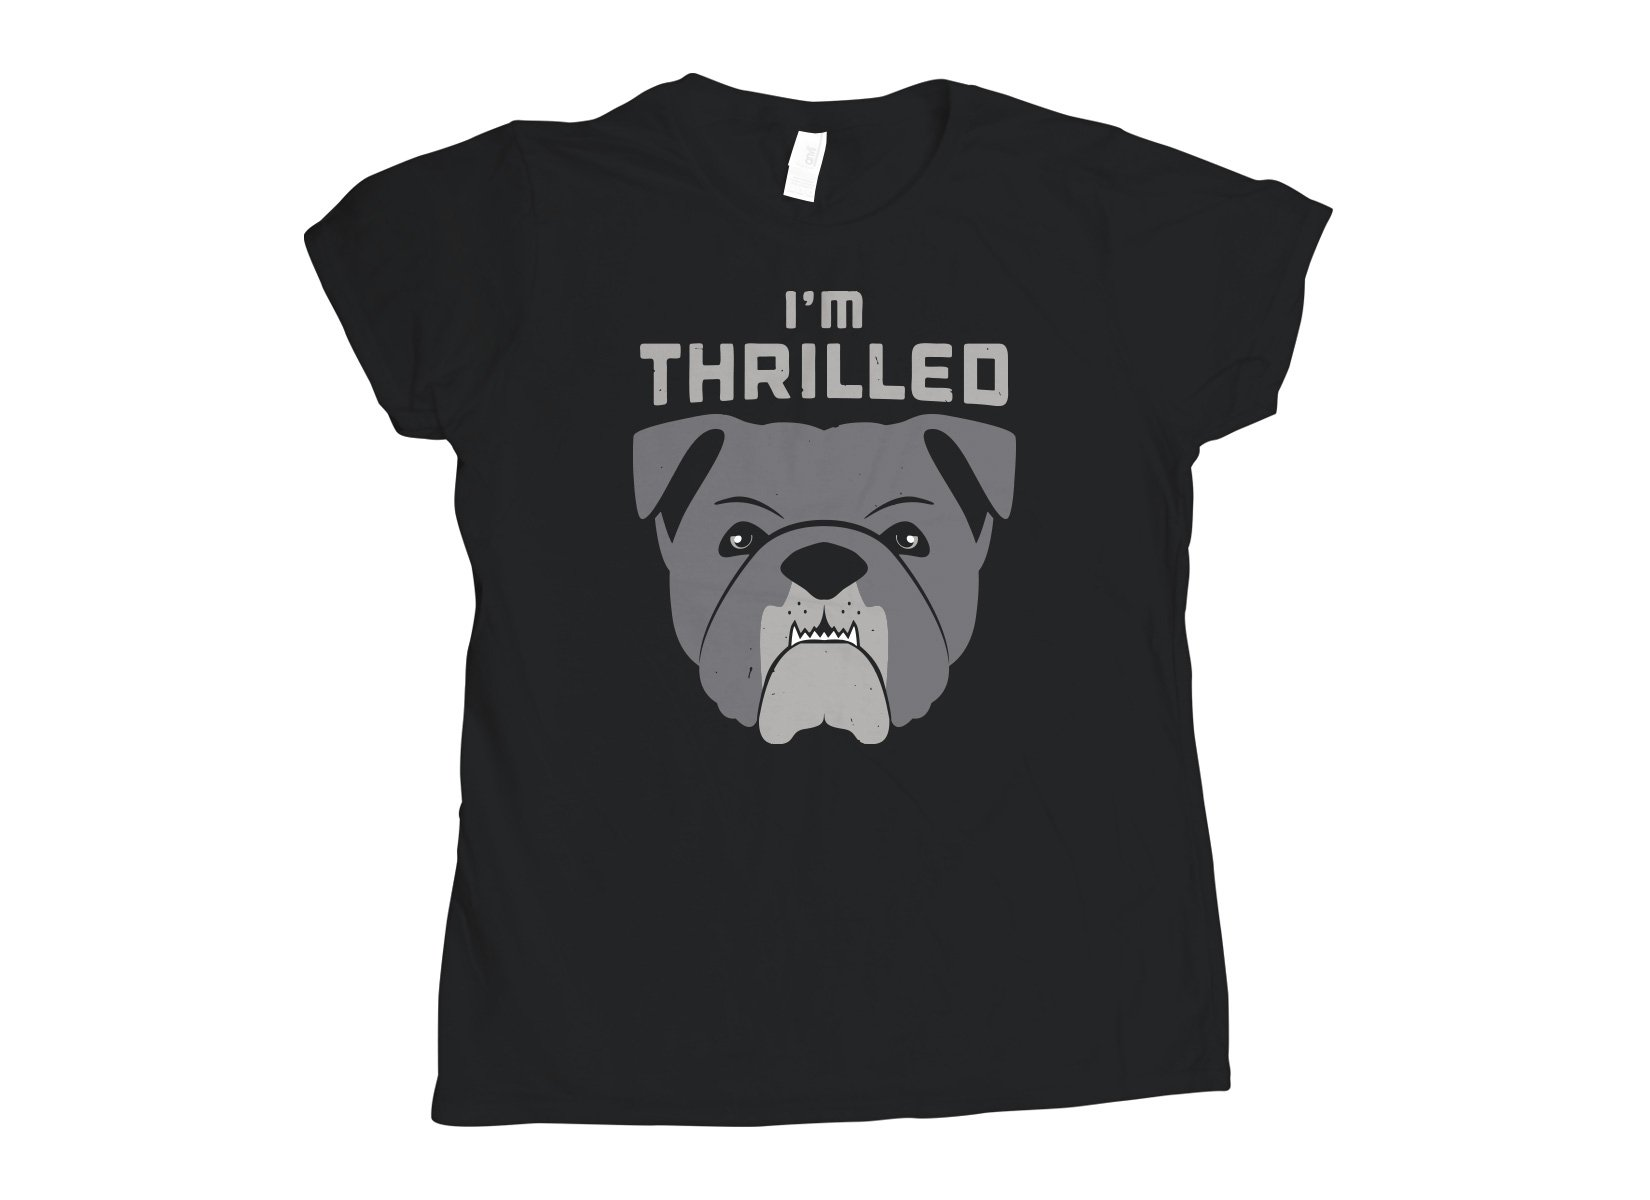 I'm Thrilled on Womens T-Shirt